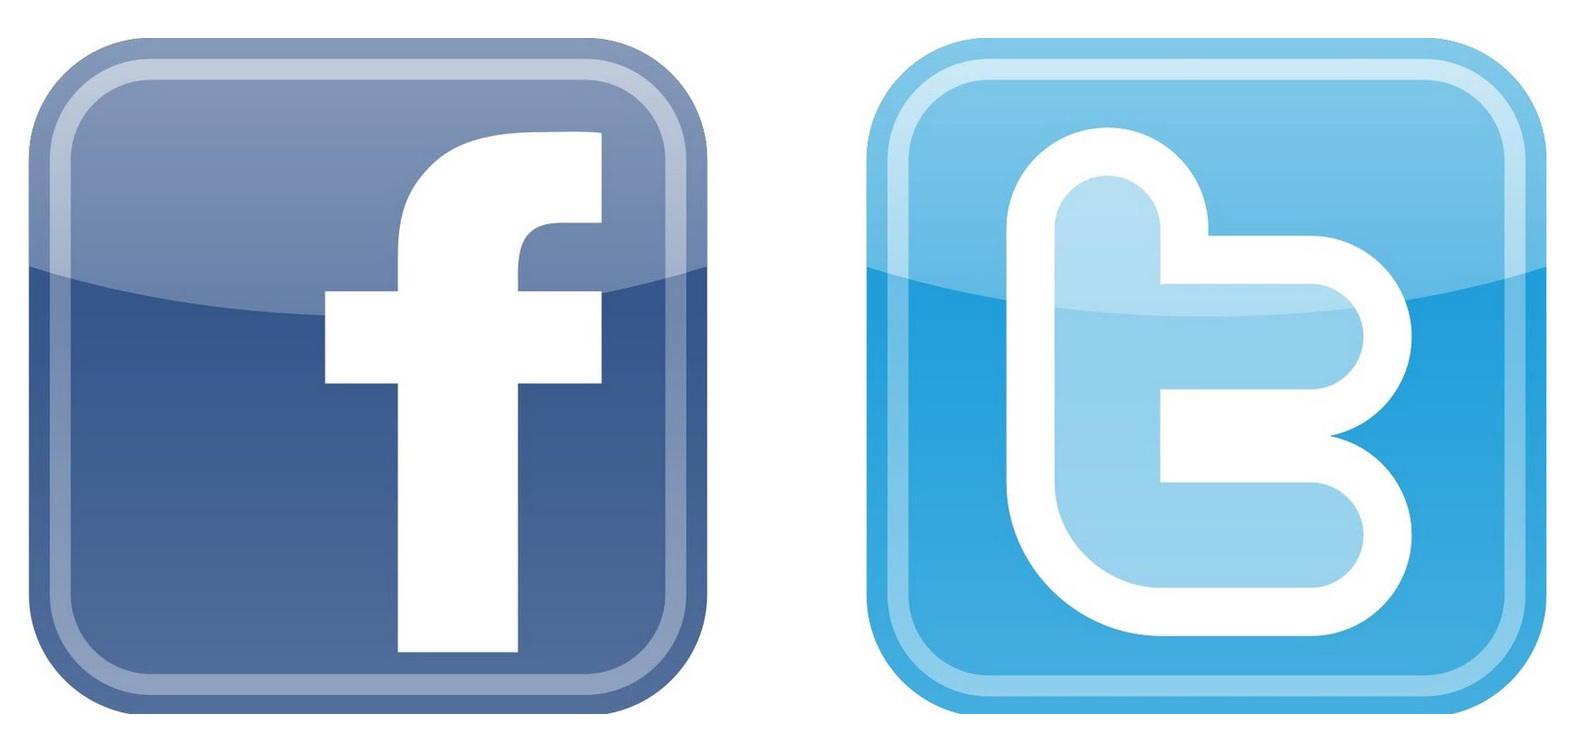 facebook logo vector free download clipart best